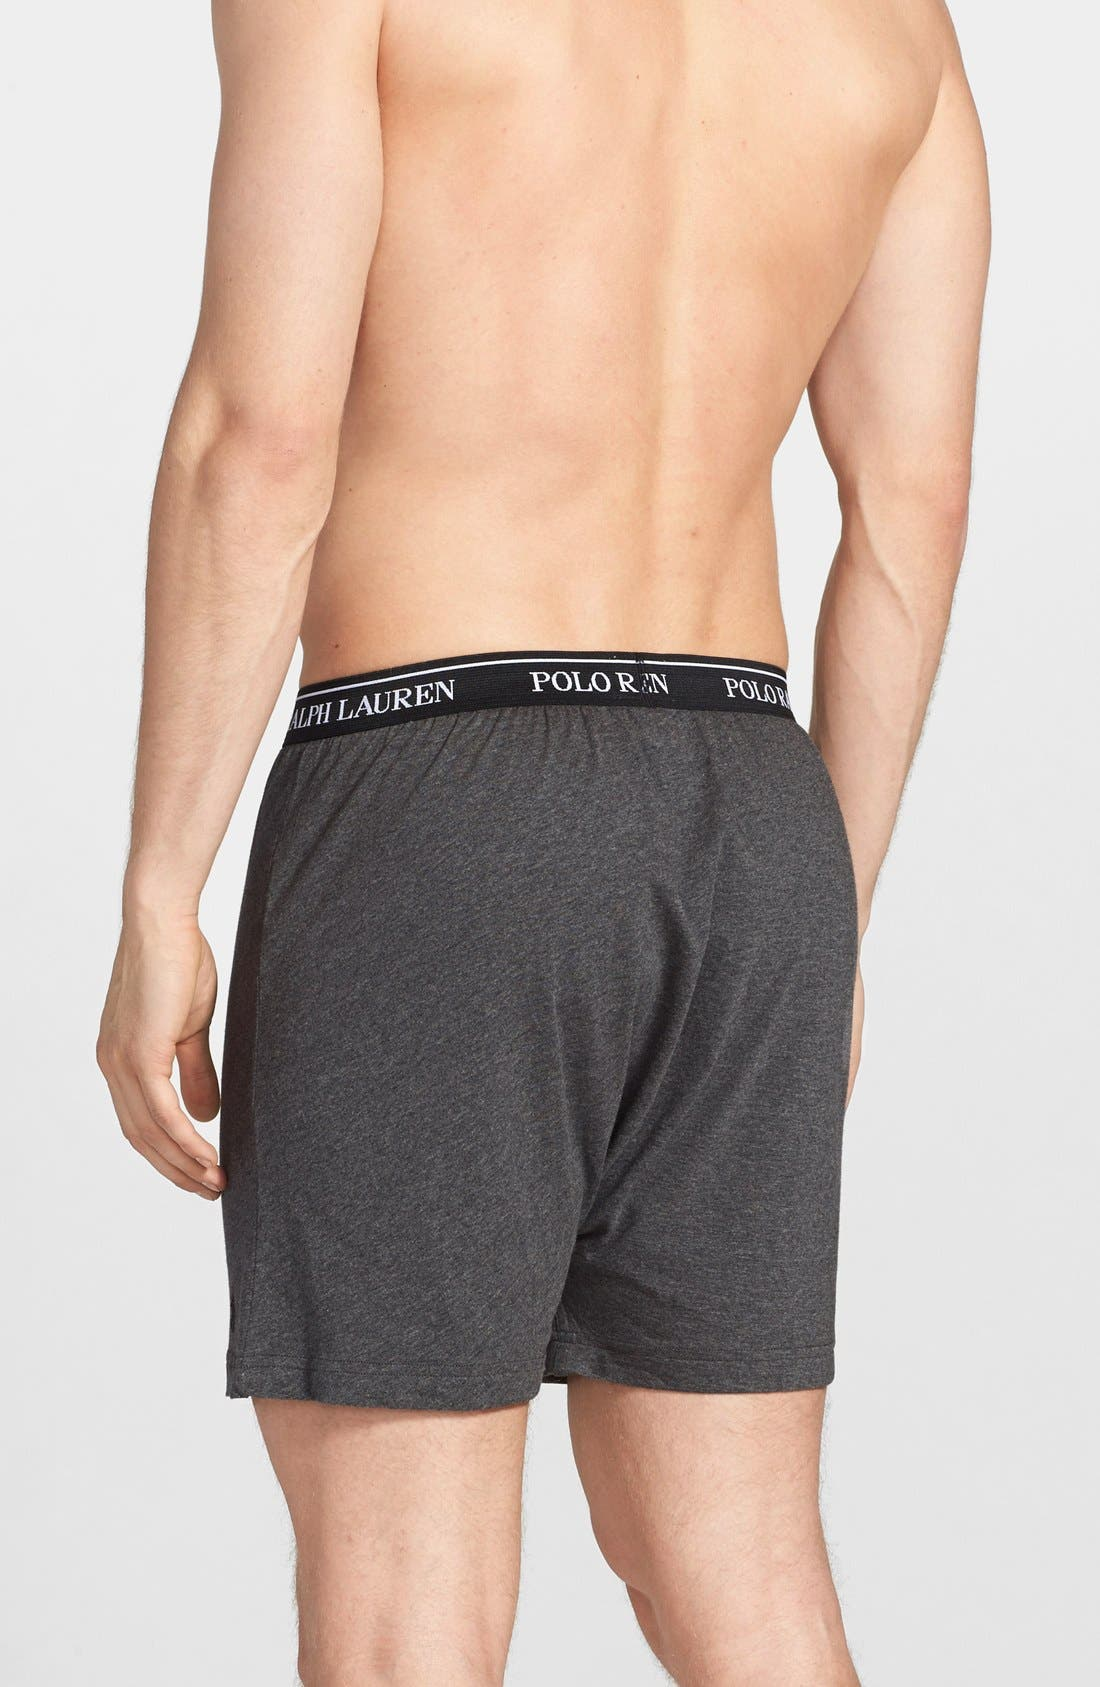 3-Pack Boxers,                             Alternate thumbnail 4, color,                             BLACK/ GREY ASSORTED